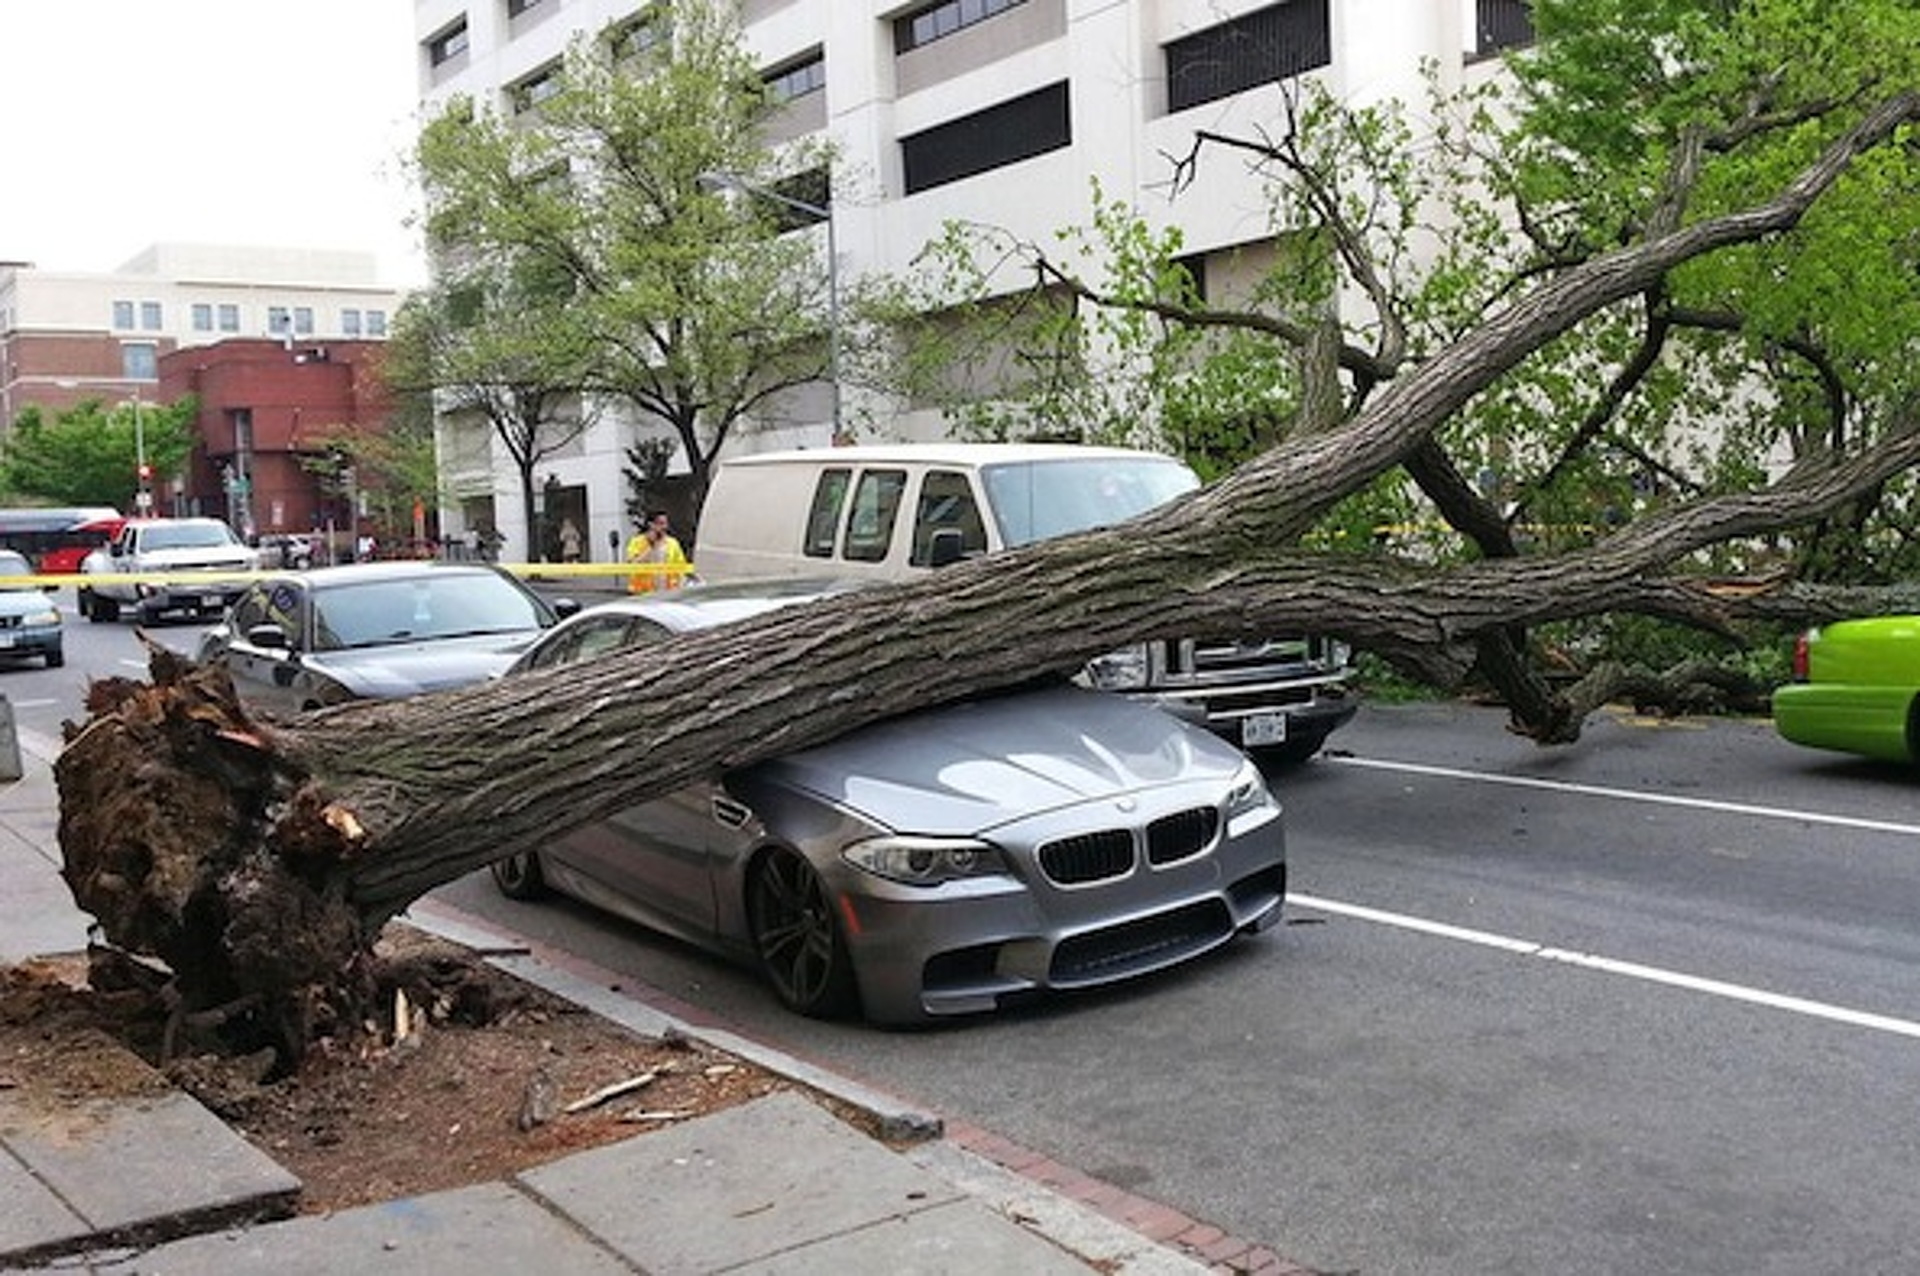 BMW M5 (F10) Crushed by a Tree